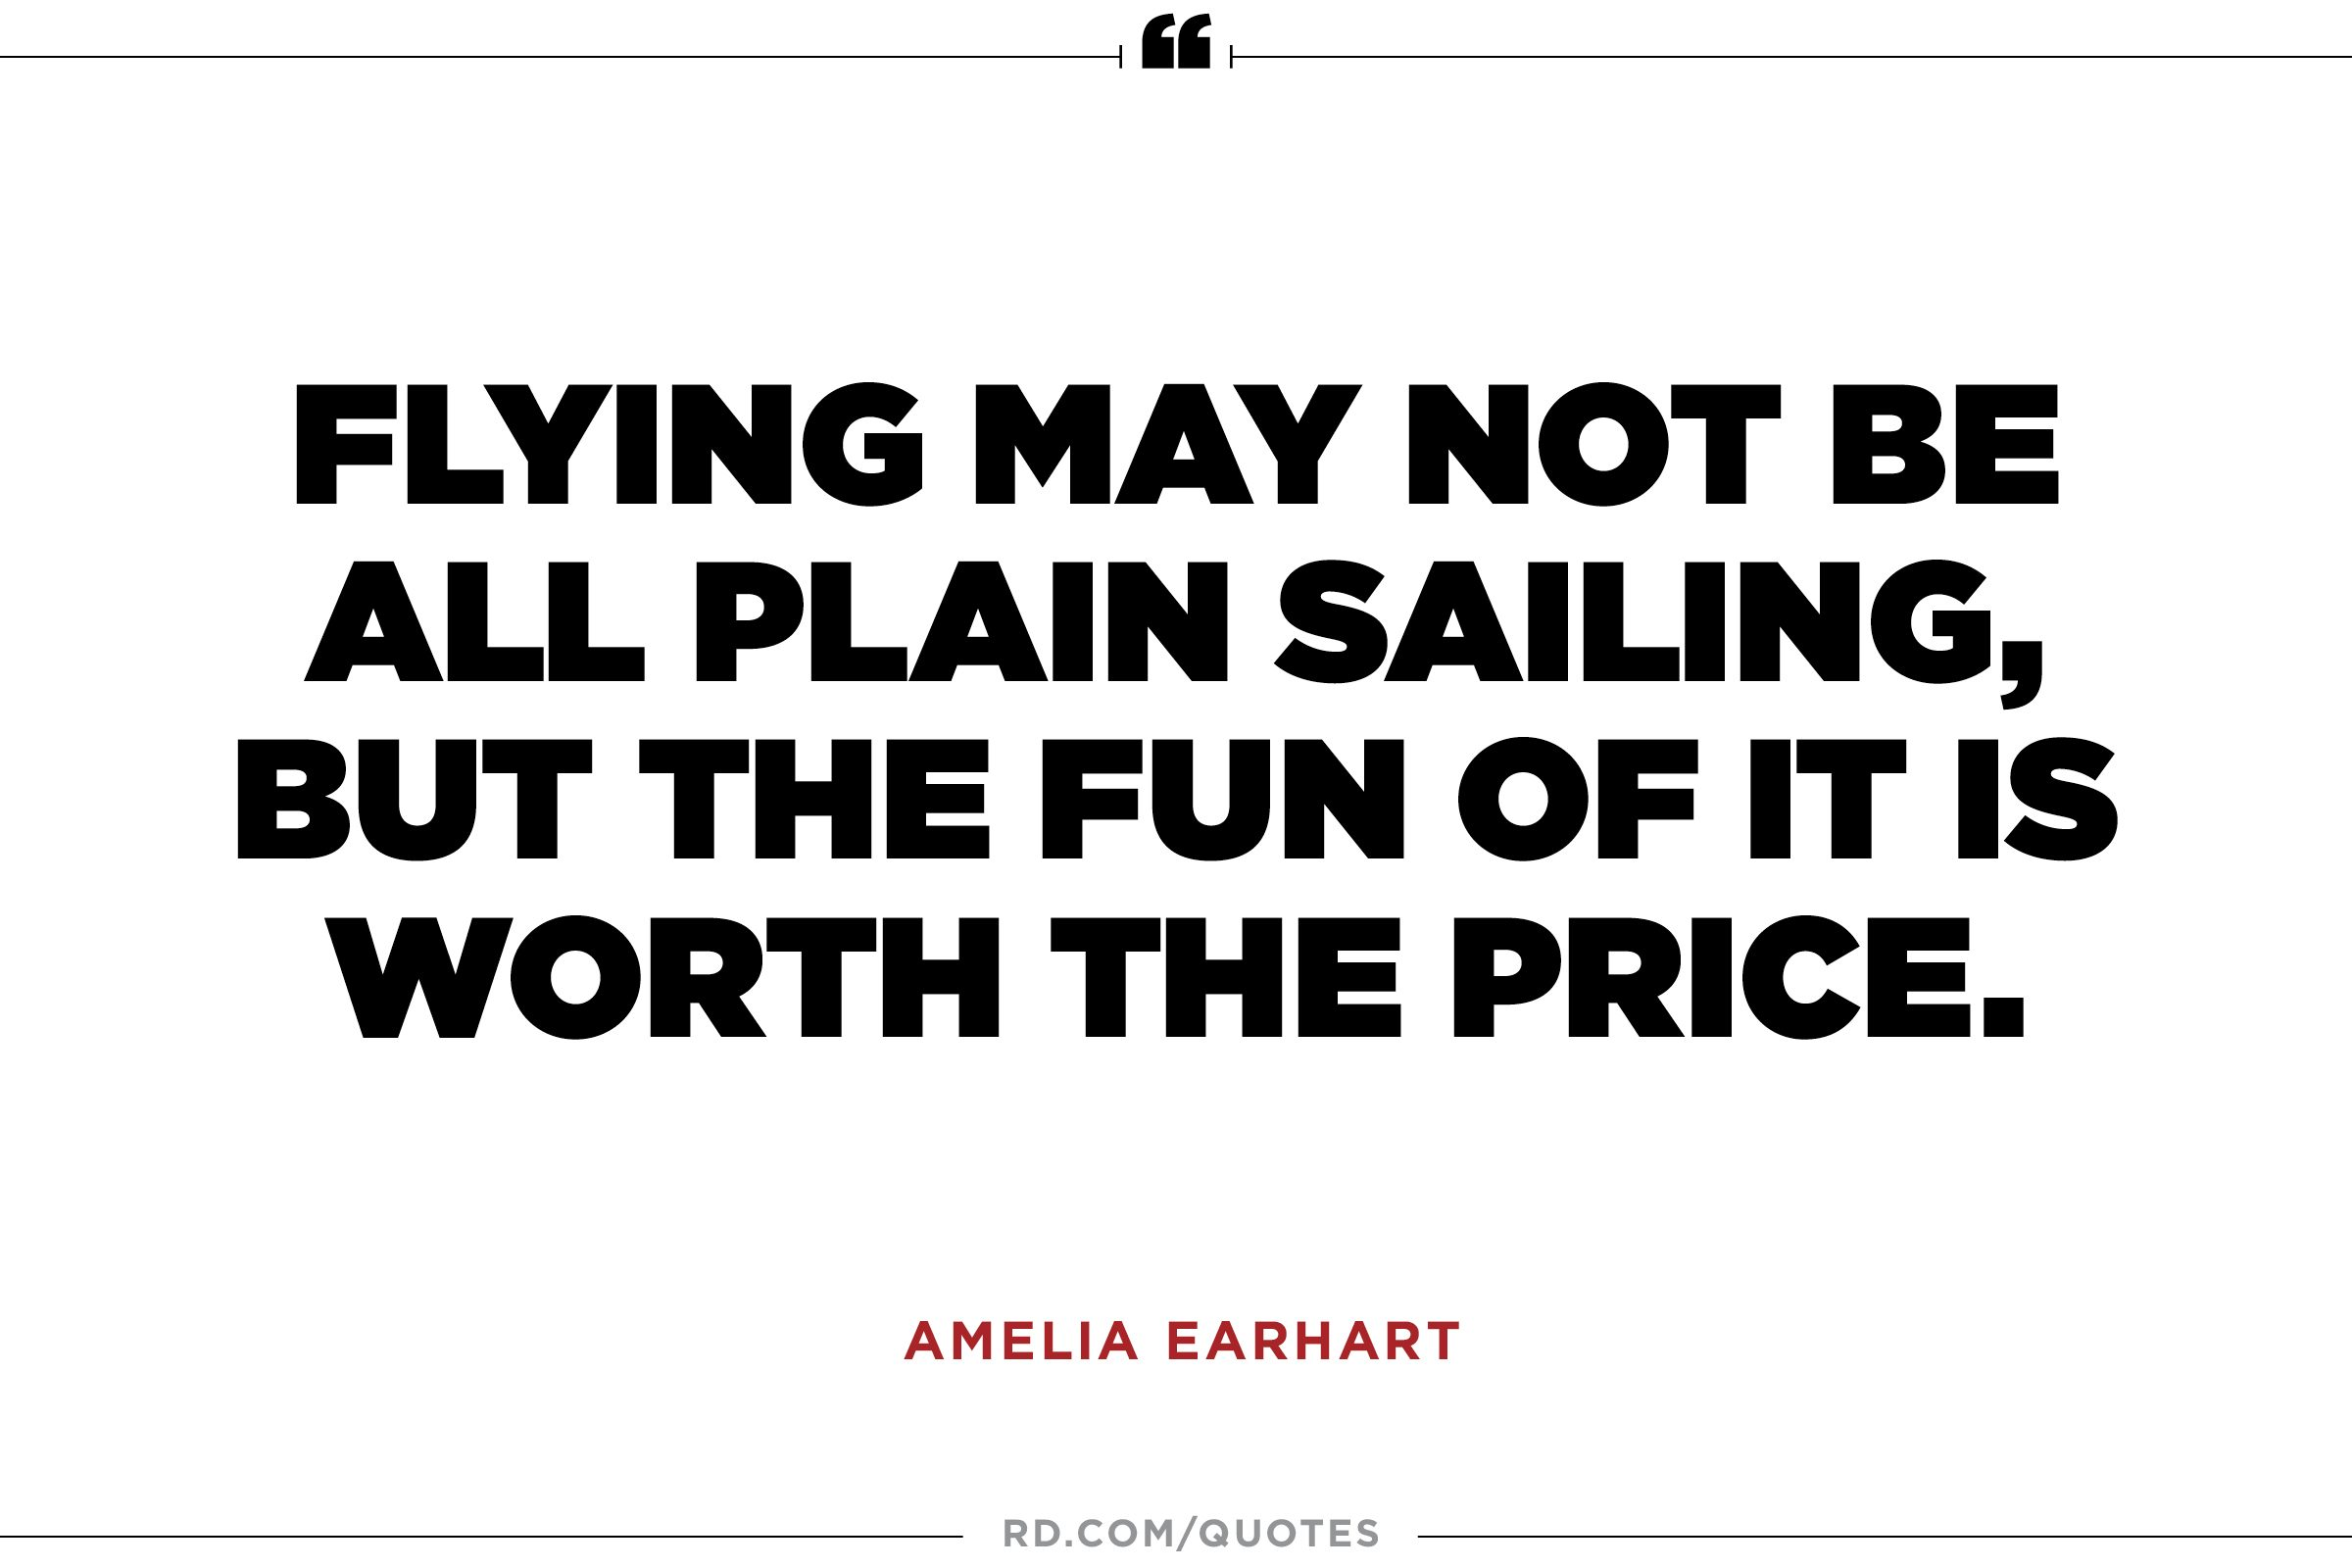 10 Amelia Earhart Quotes to Propel You to Greatness